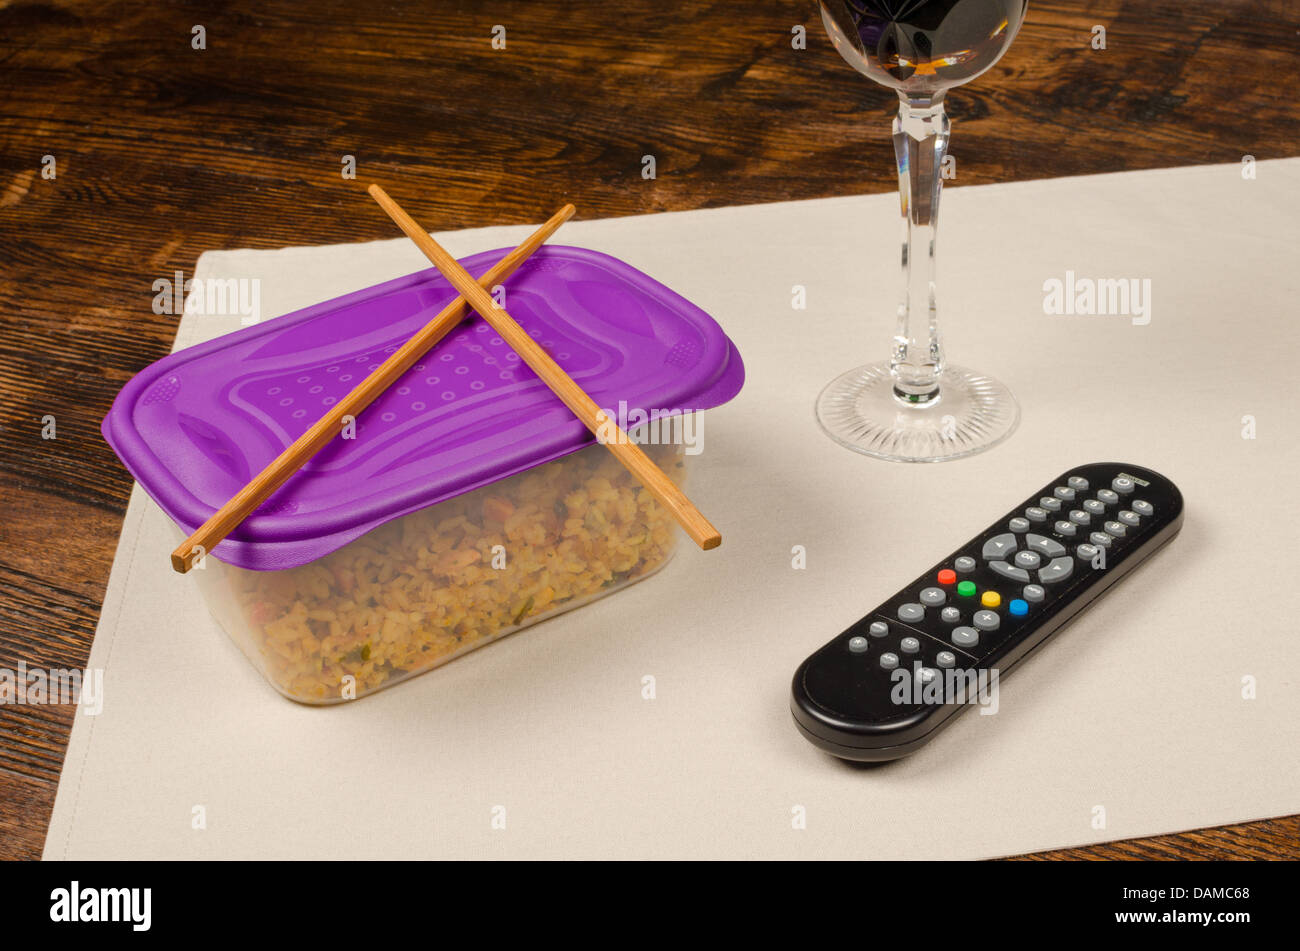 Leftovers dinner out of the food box, a bachelor meal - Stock Image